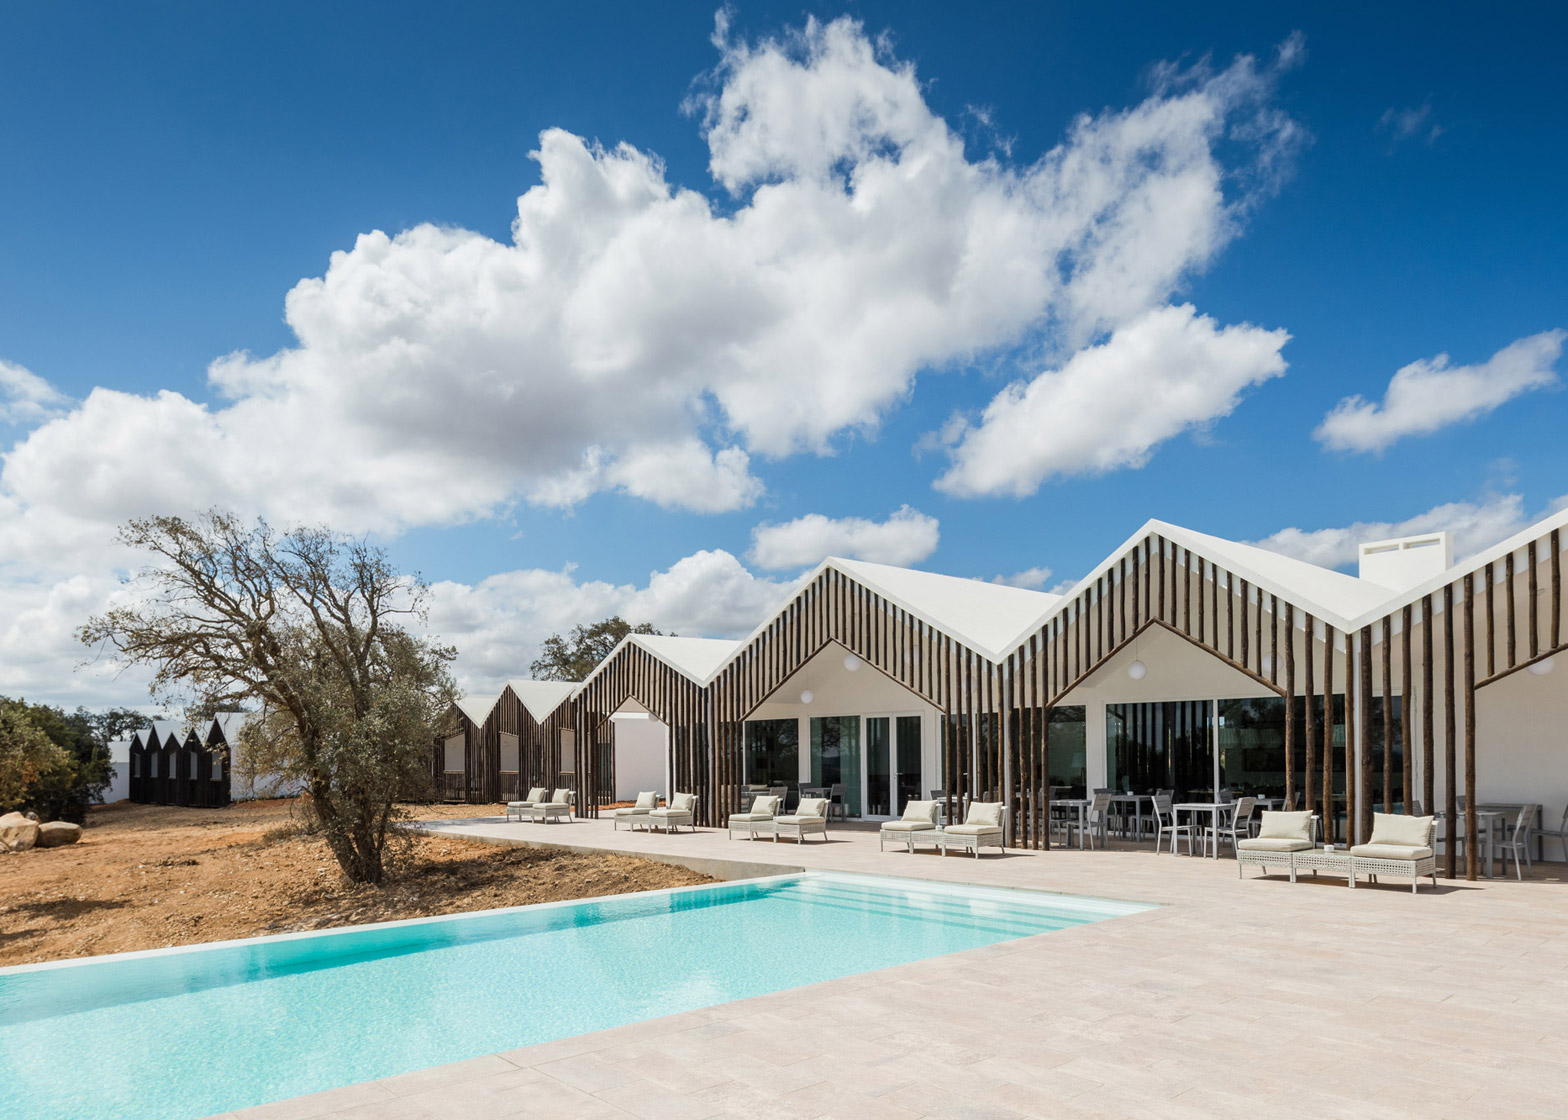 Sobreiras Alentejo Country Hotel by Future Architecture Thinking